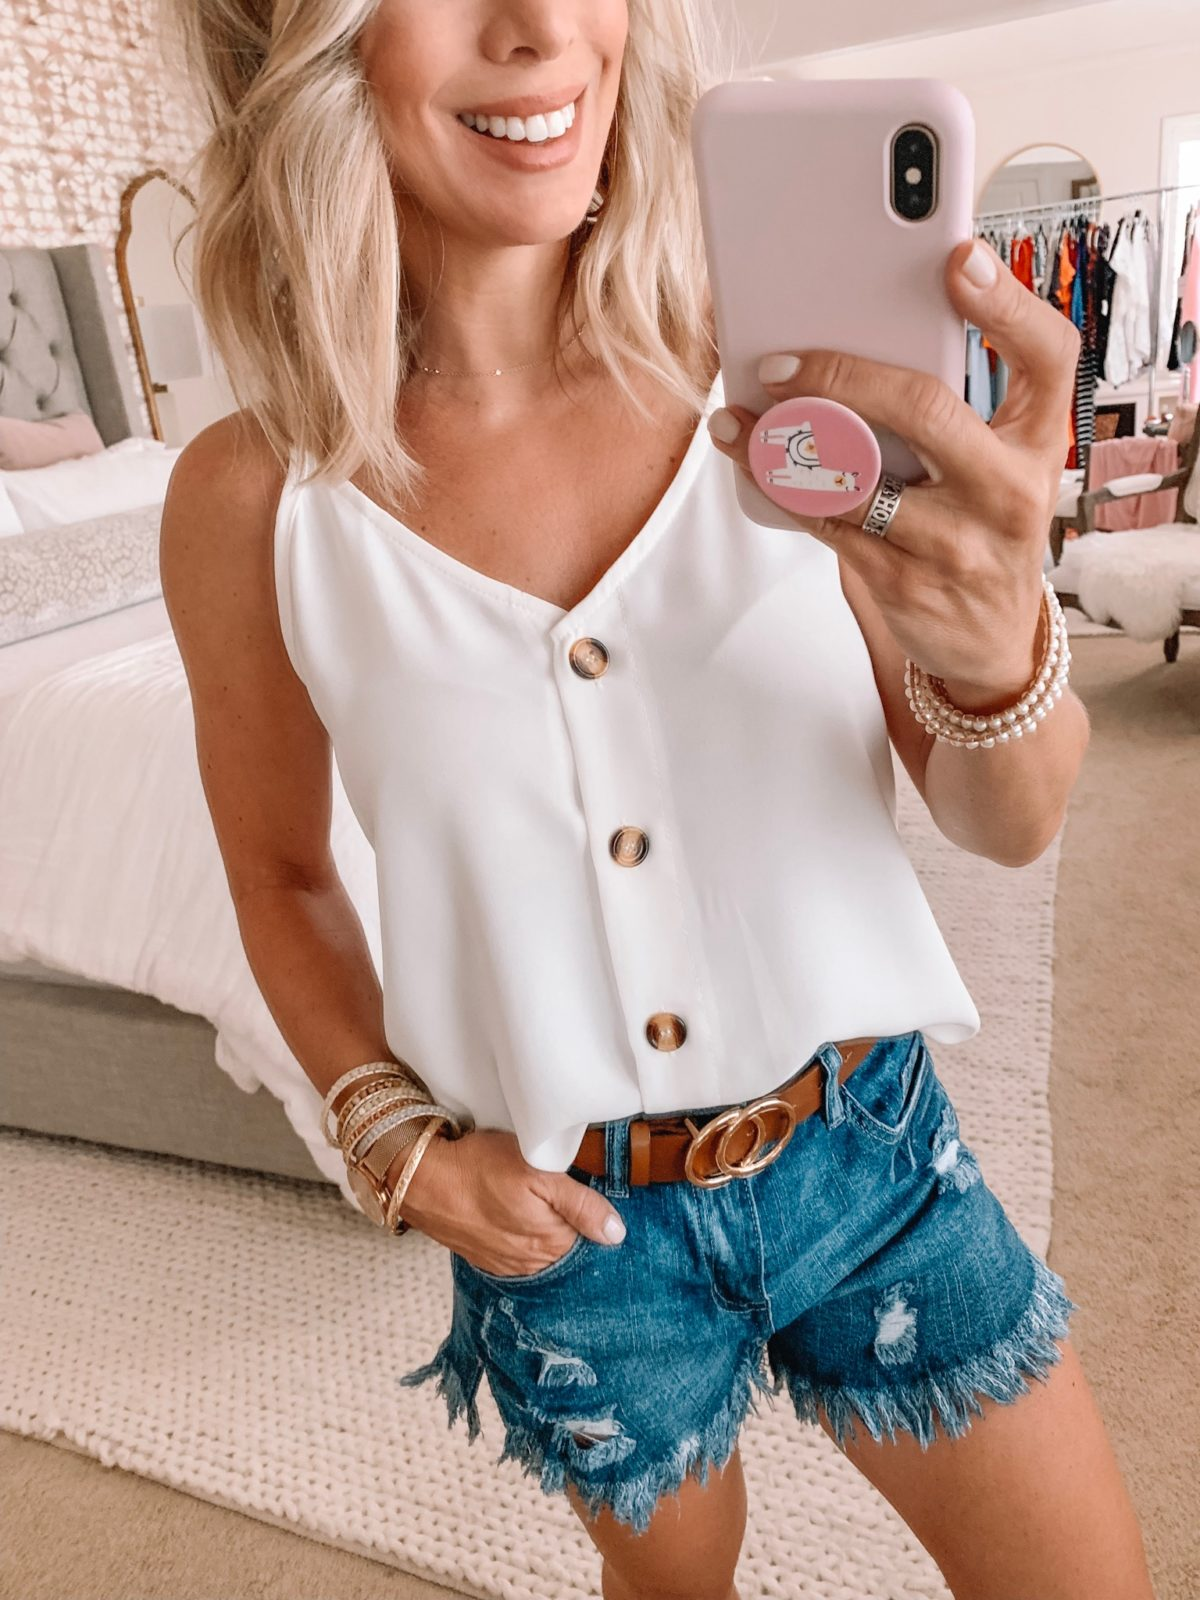 Amazon Fashion Haul - white tank and high waist jean shorts